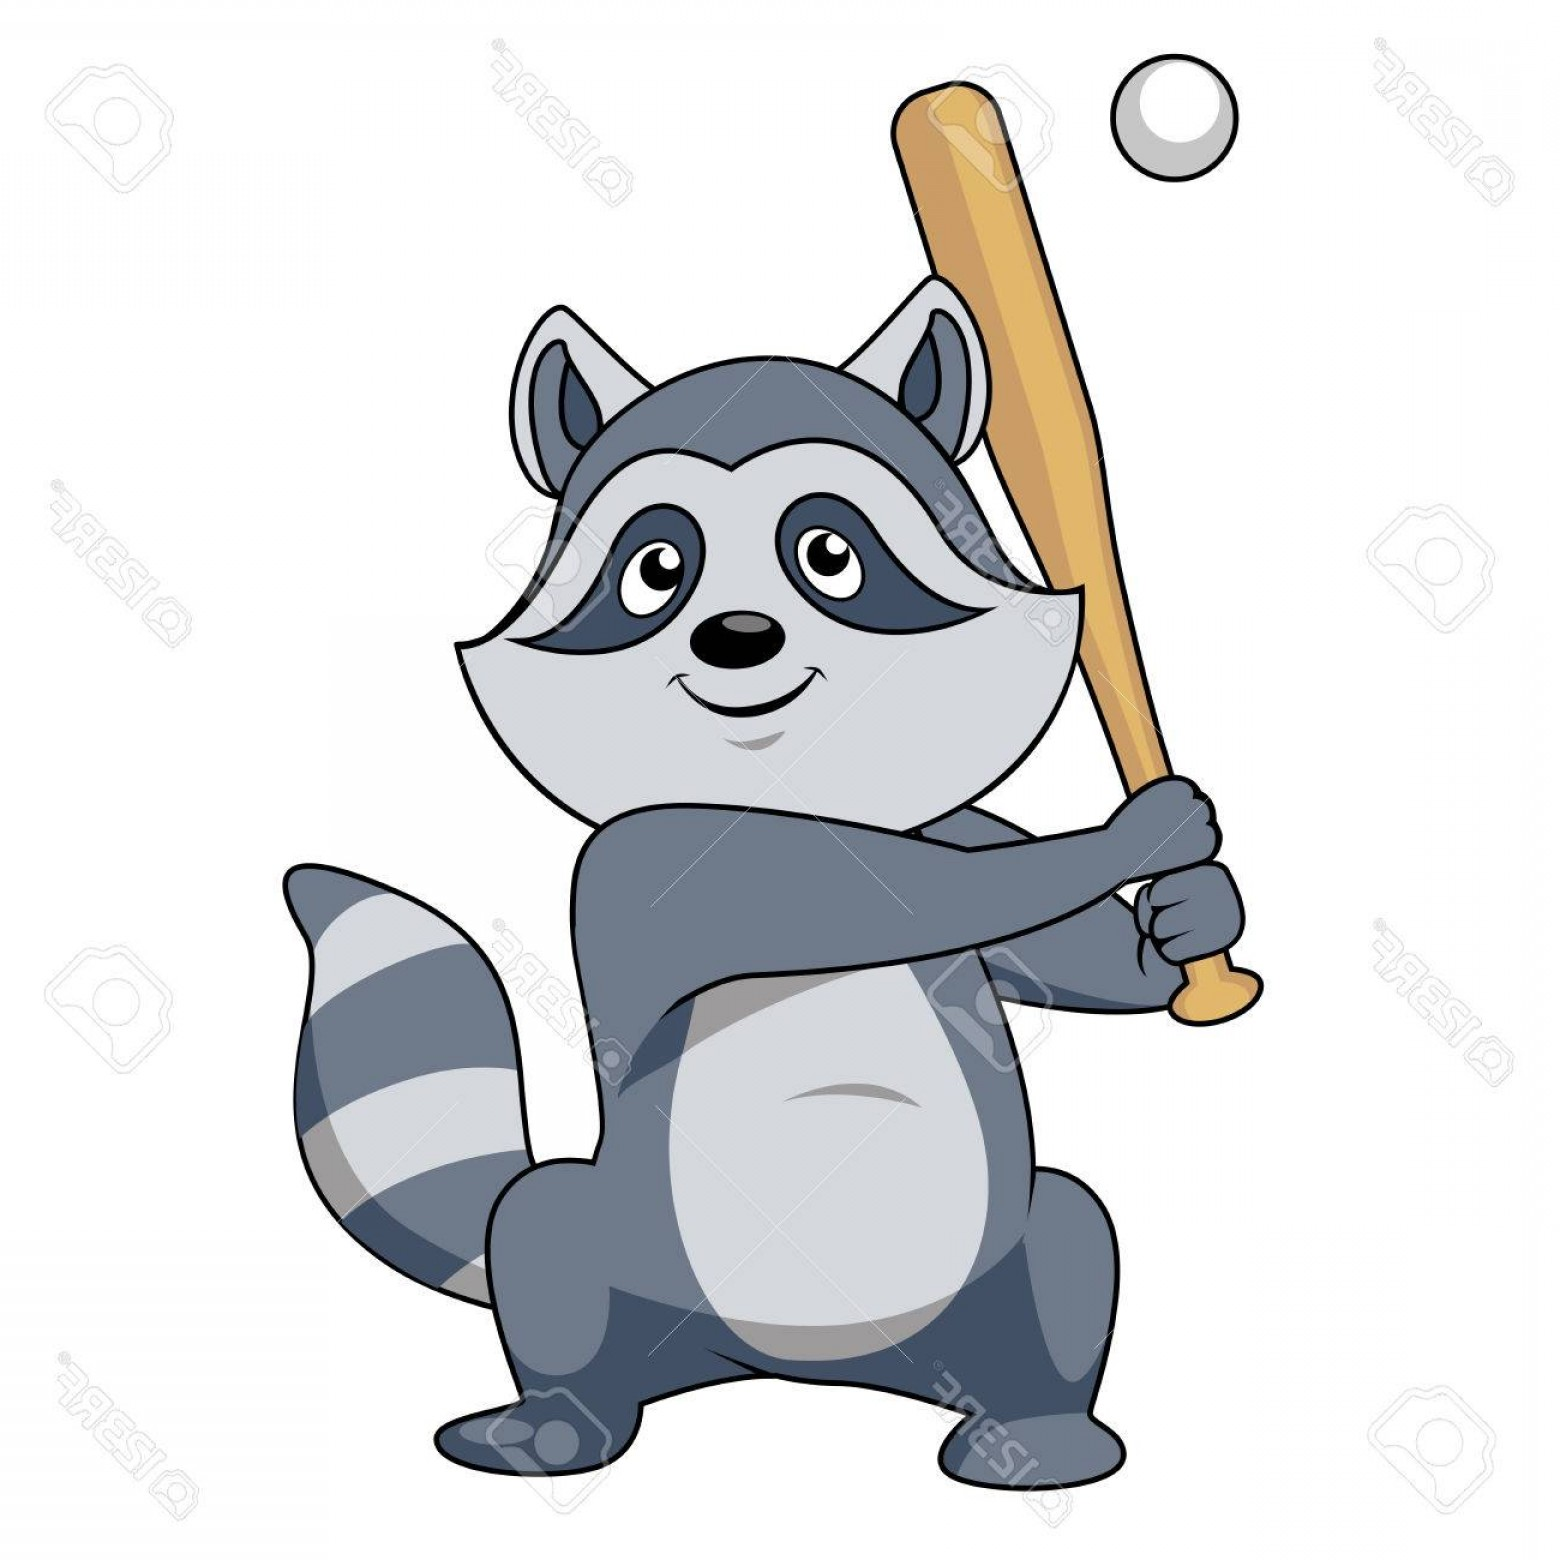 Baseball Tails Vector Clip Arts: Photostock Vector Smiling Gray Cartoon Raccoon Baseball Player Character Standing With Bat Ready To Hit A Pitch Ball F